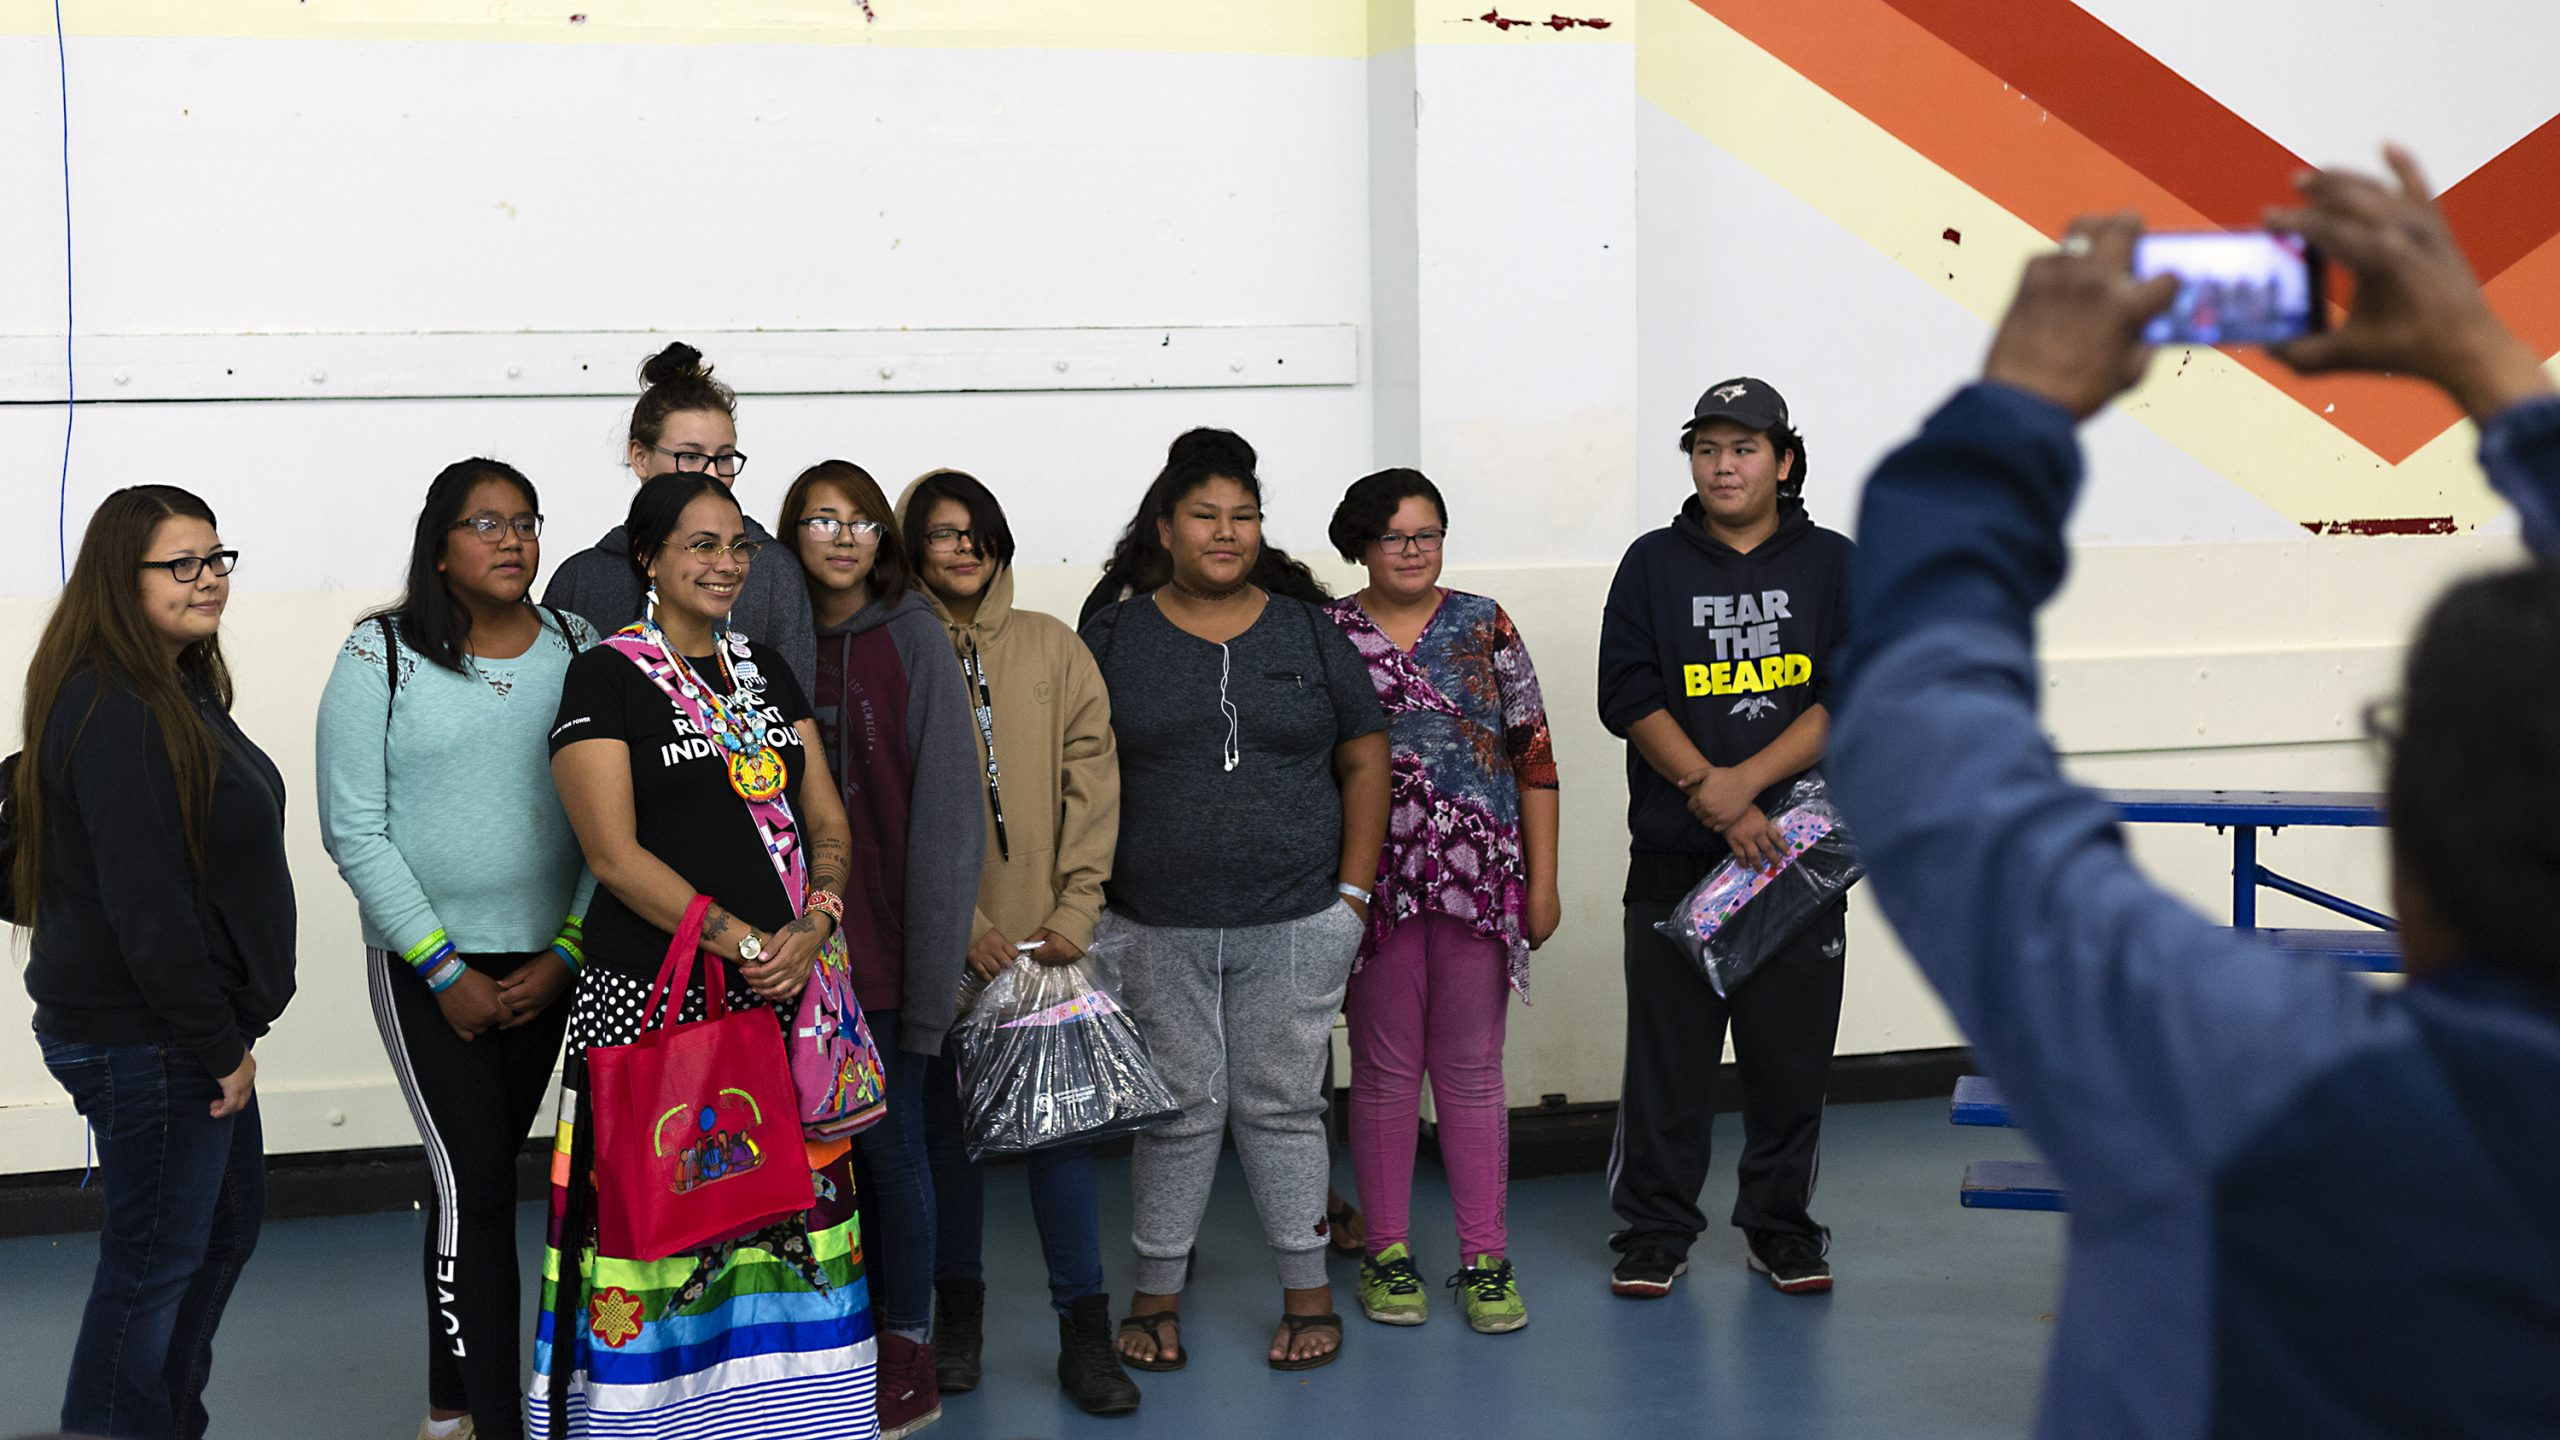 Paow News: Gathering Aims To Educate Youth About Residential Schools